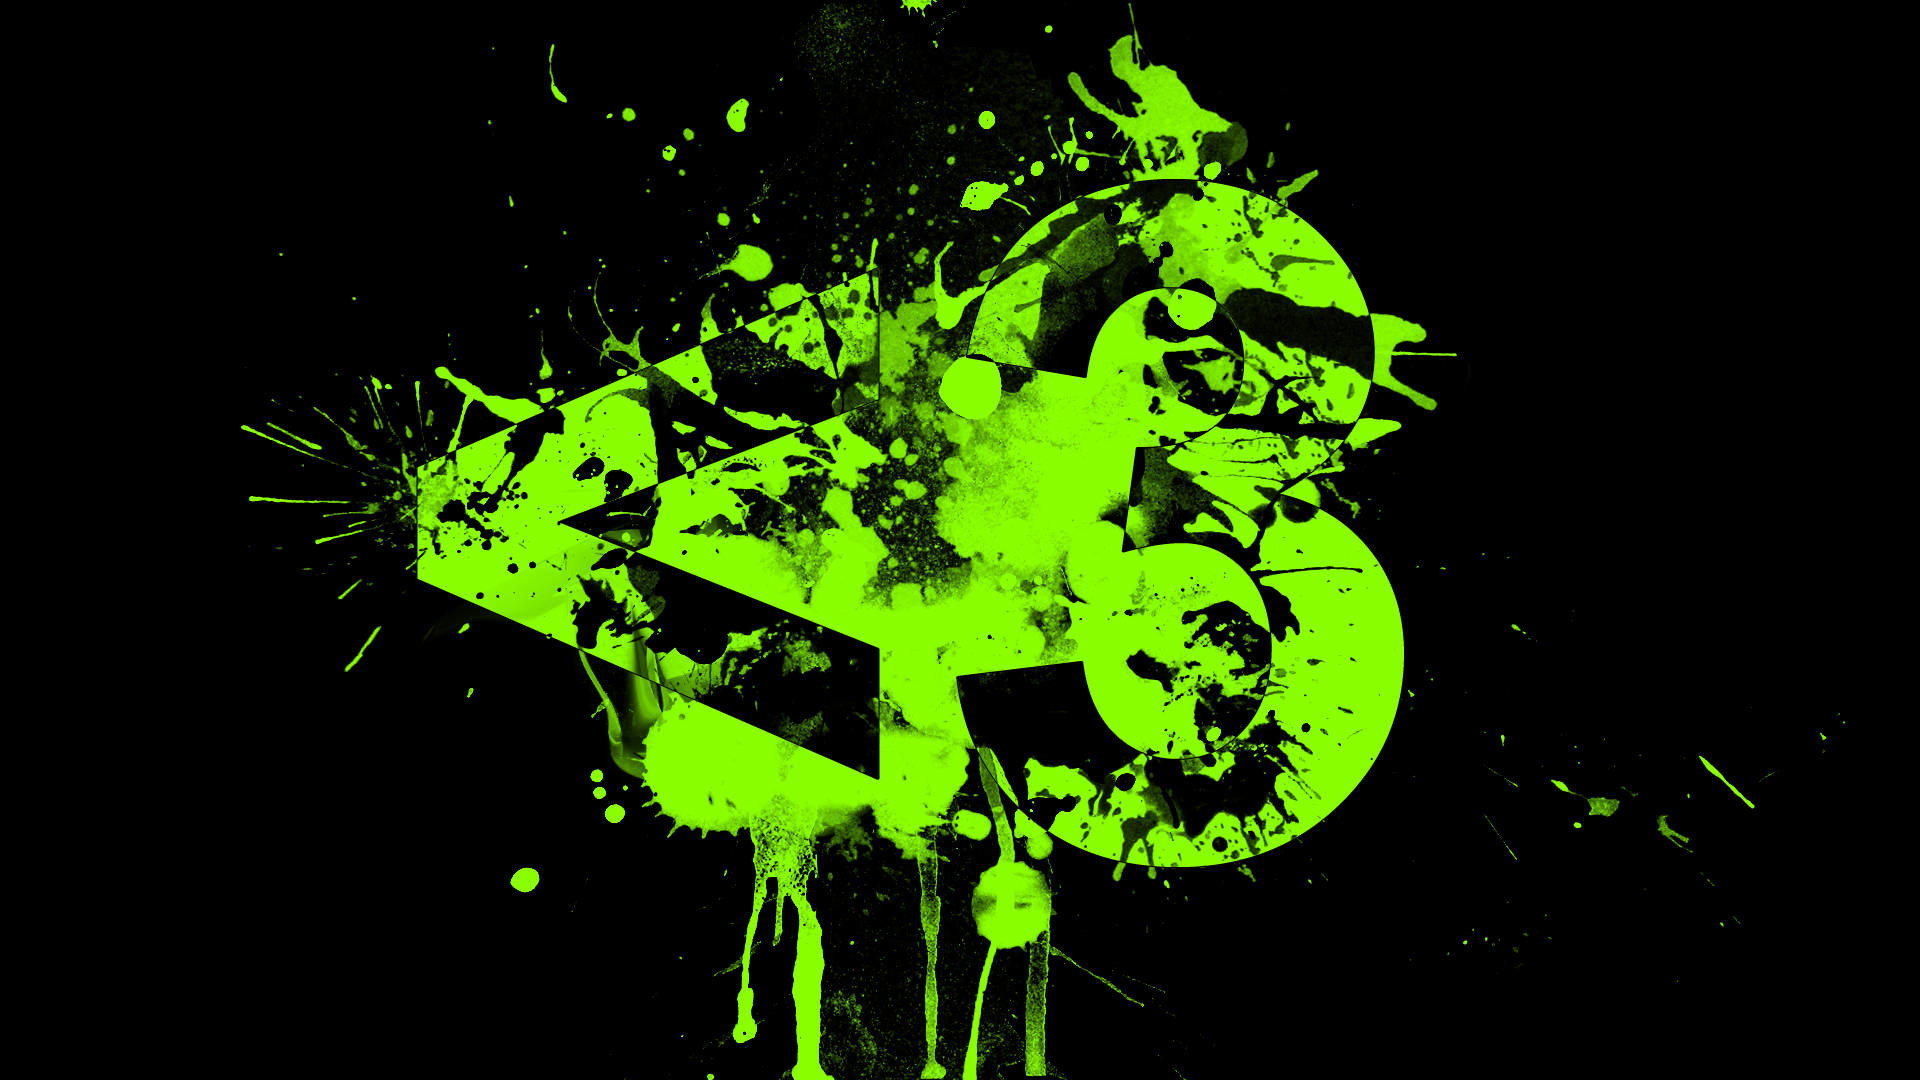 Black and green backgrounds